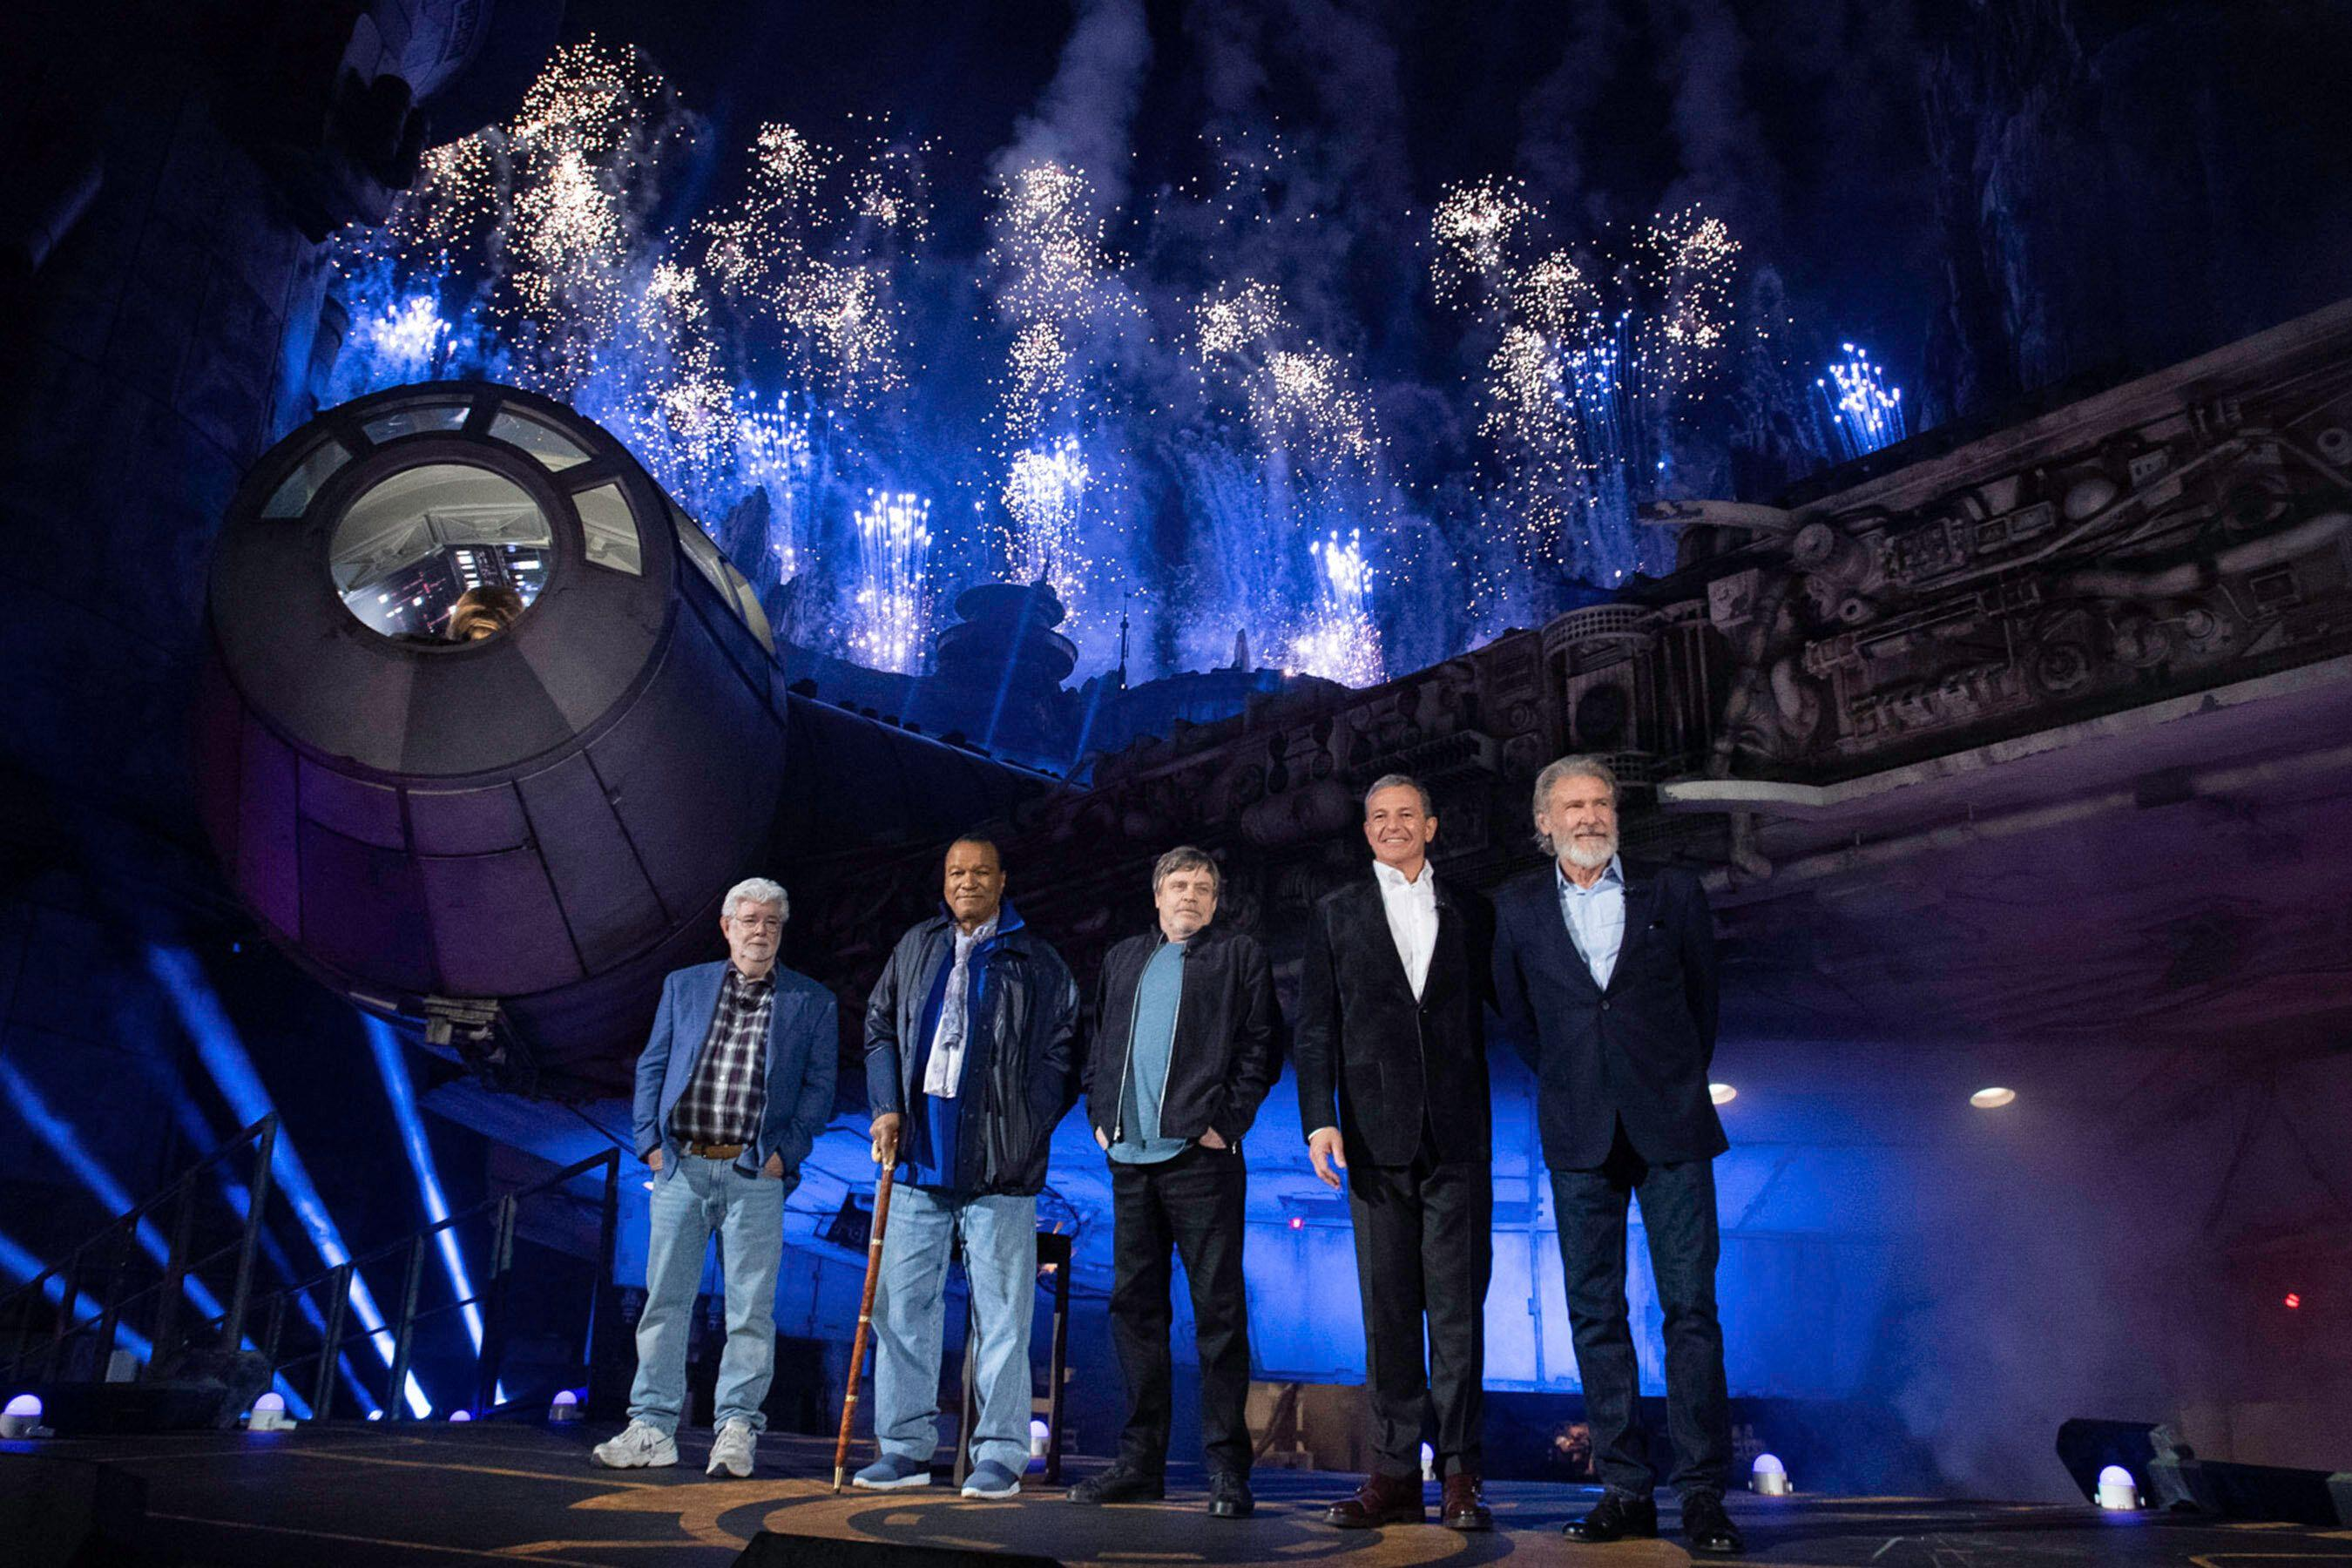 George Lucas, Billy Dee Williams, Mark Hamill, Bob Iger and Harrison Ford at the dedication ceremony for Star Wars: Galaxy's Edge at Disneyland (Richard Harbaugh/Disneyland Resort)